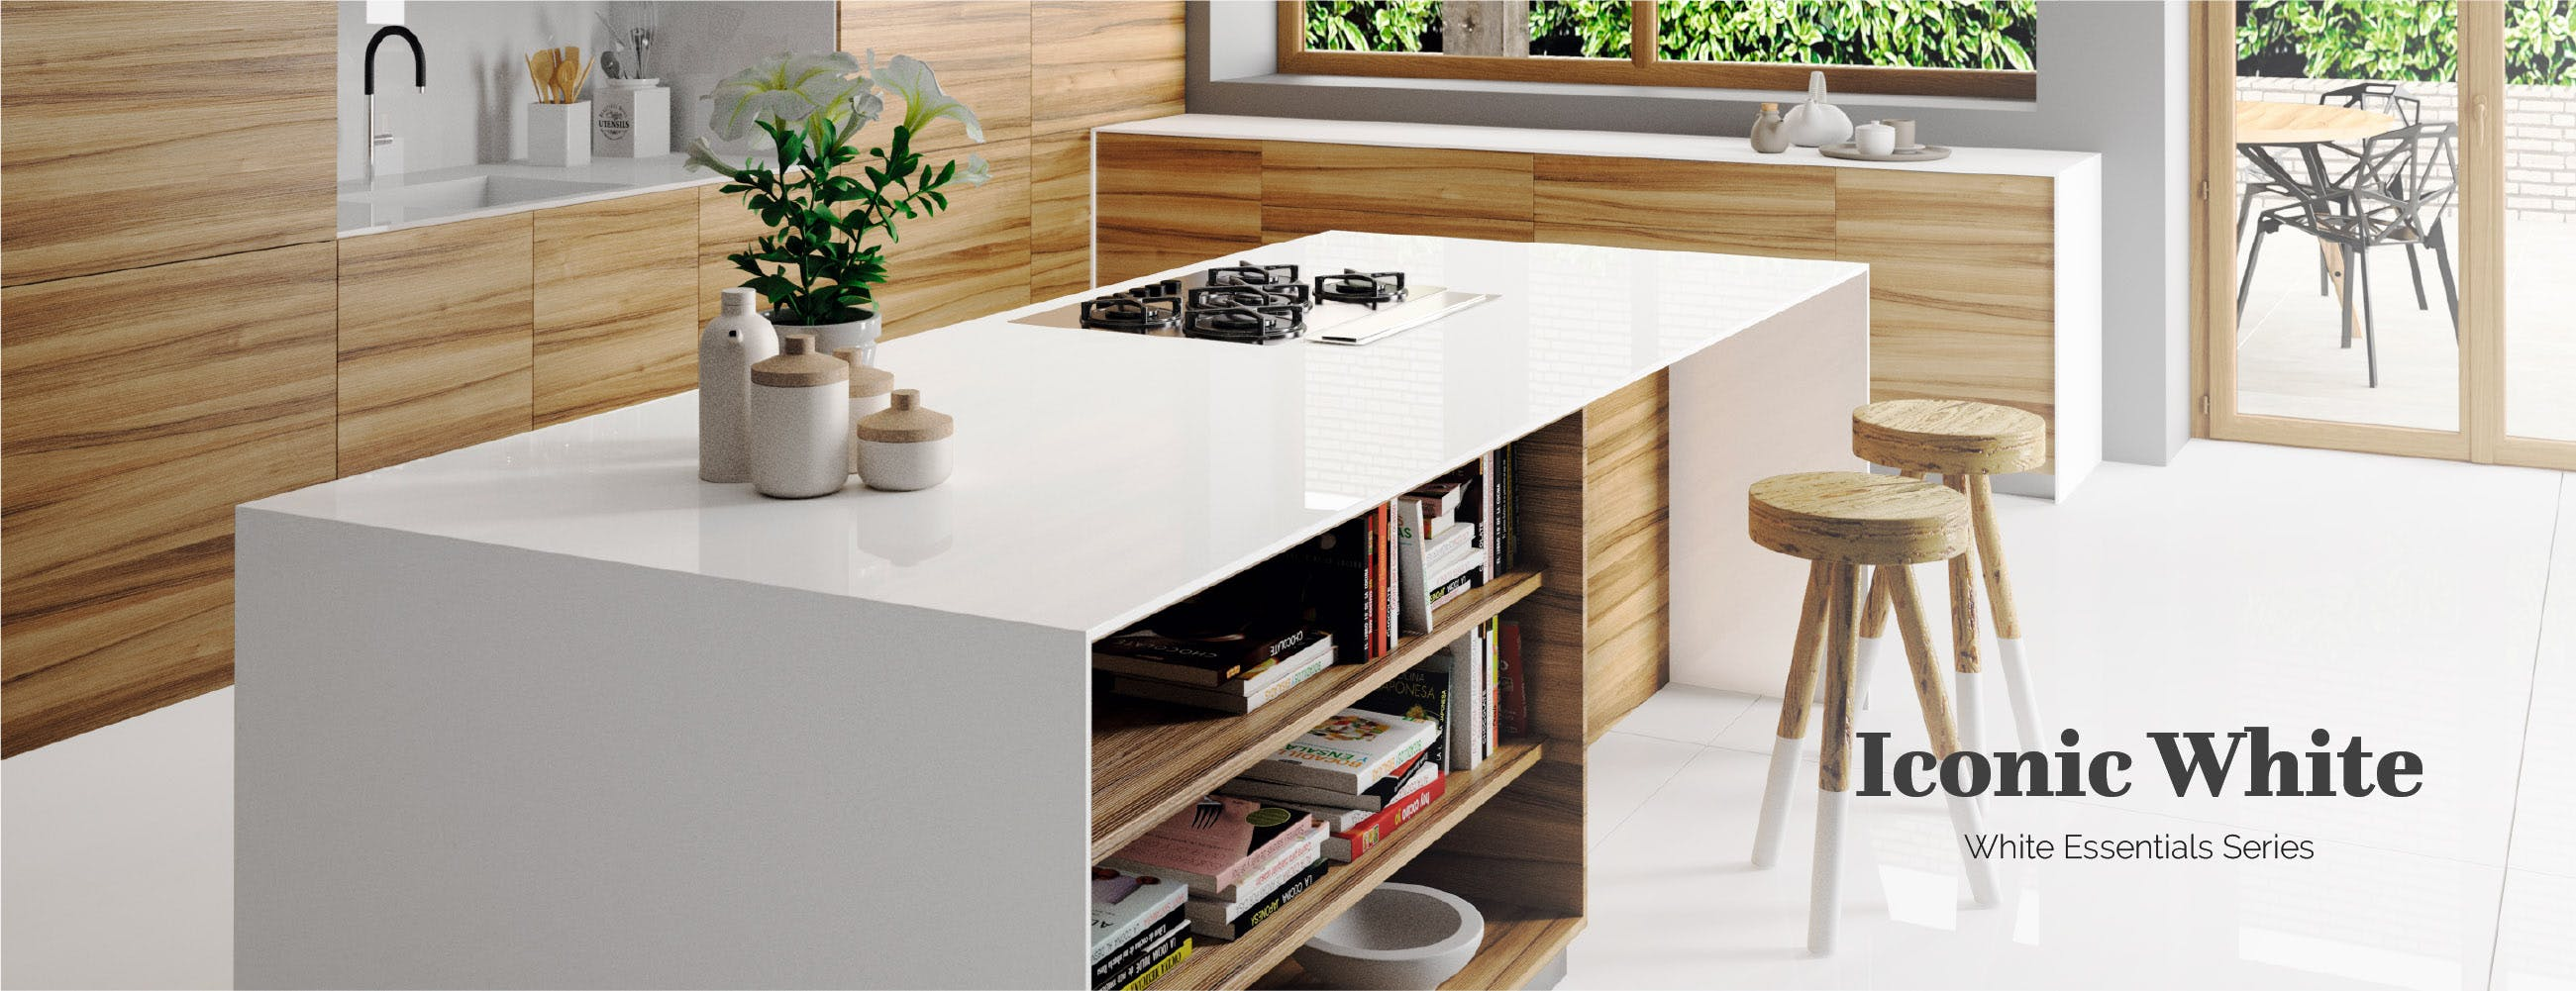 ... Silestone Suede Touch White Essentials: Trend For White Kitchen ...